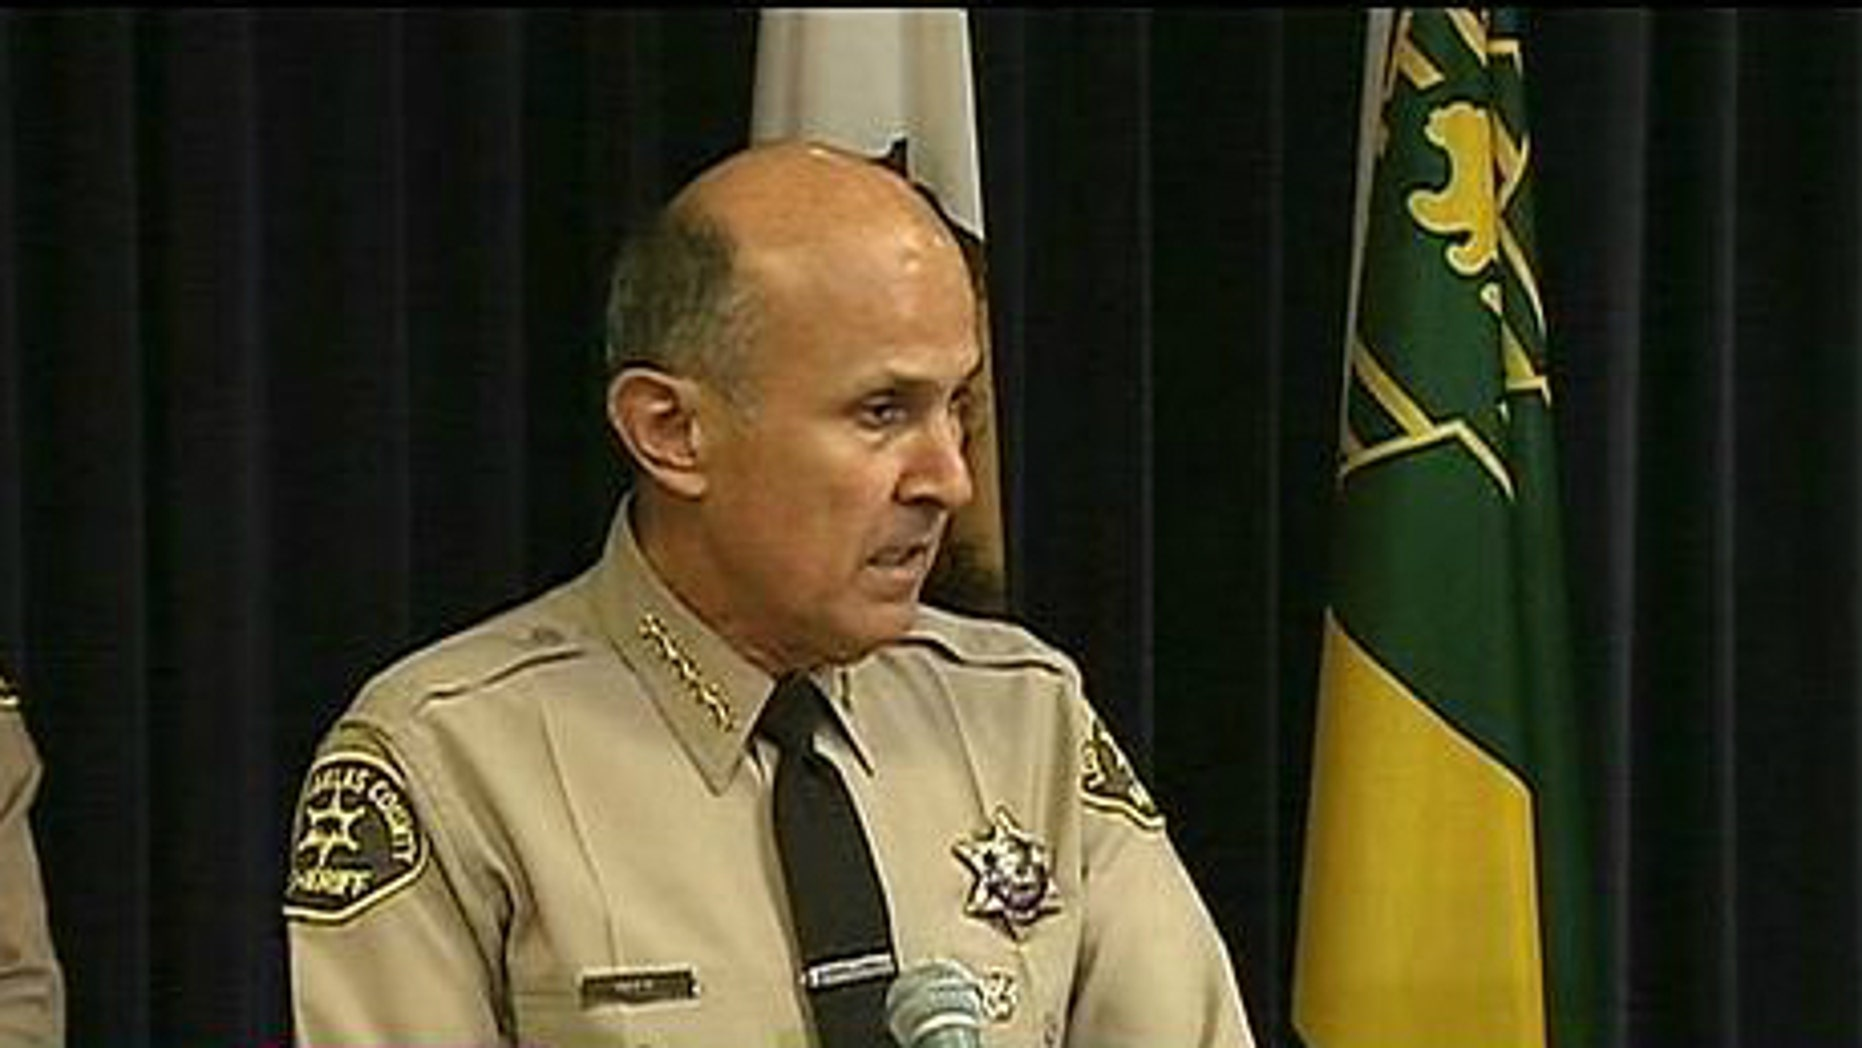 Los Angeles County Sheriff Lee Baca (MyFoxLA.com)